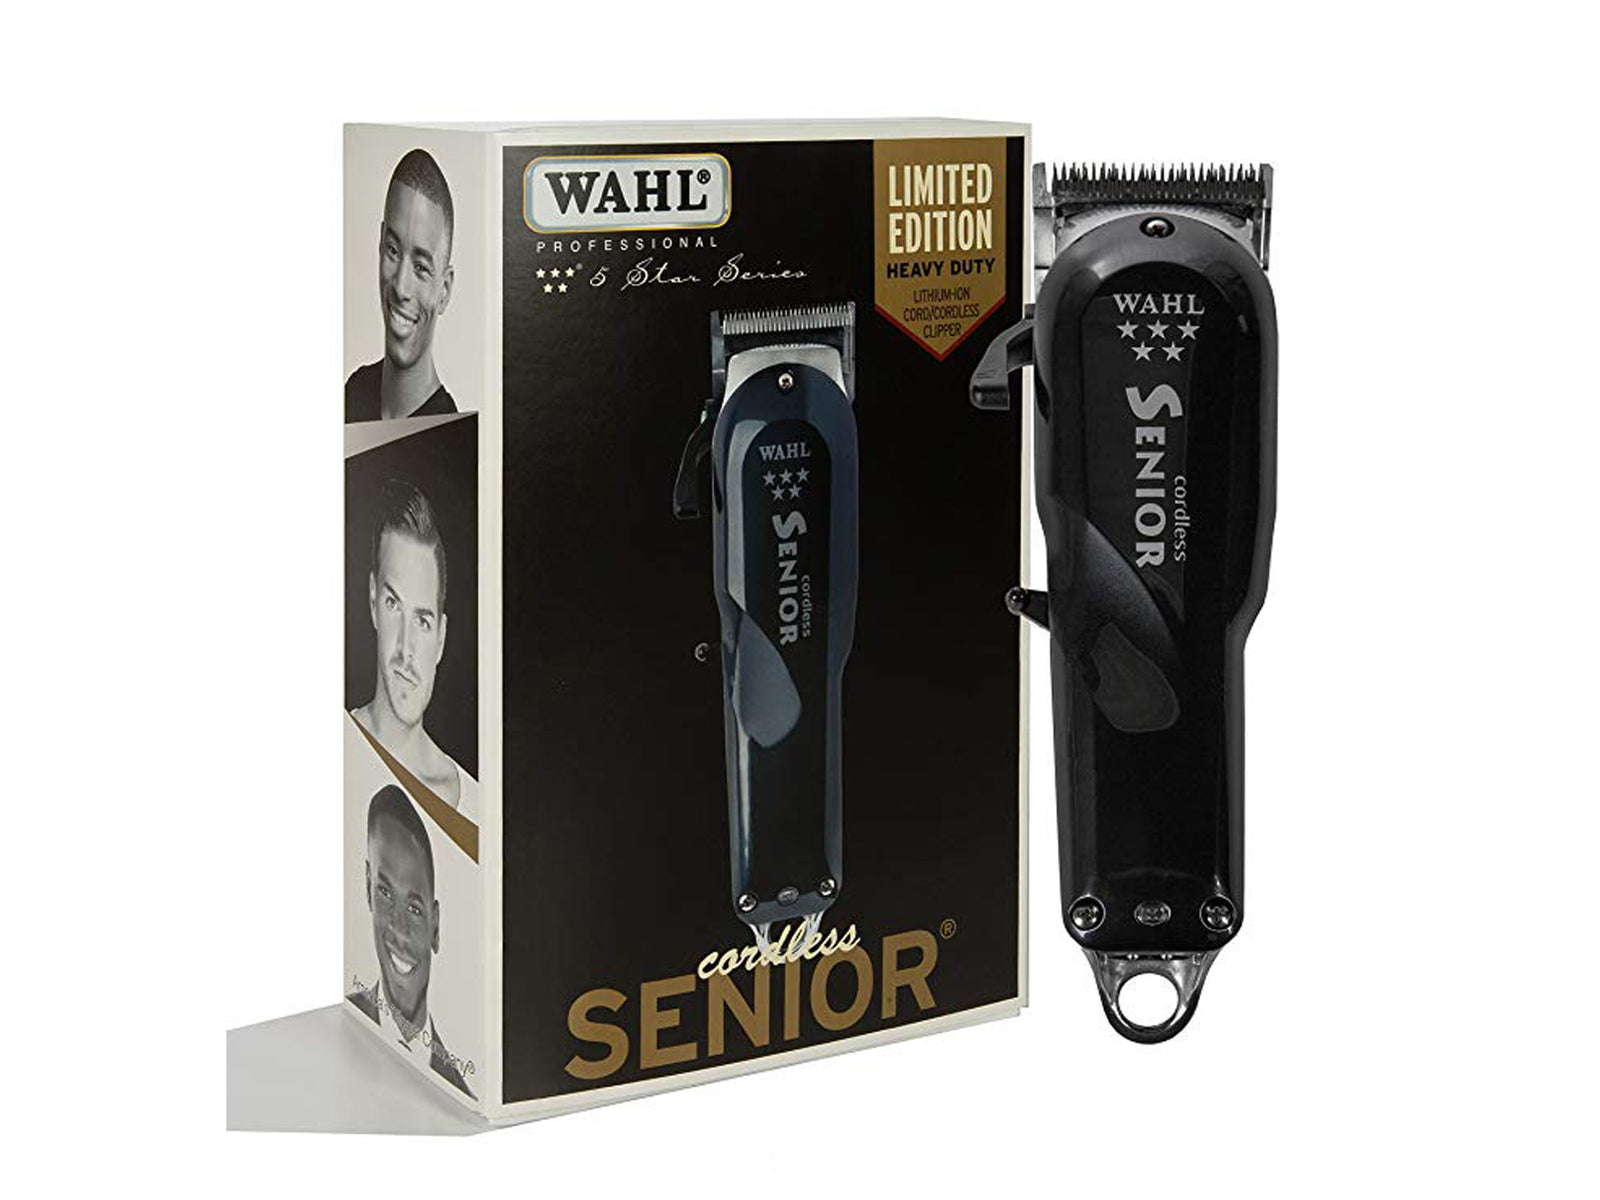 Wahl Professional Cordless Senior Clipper